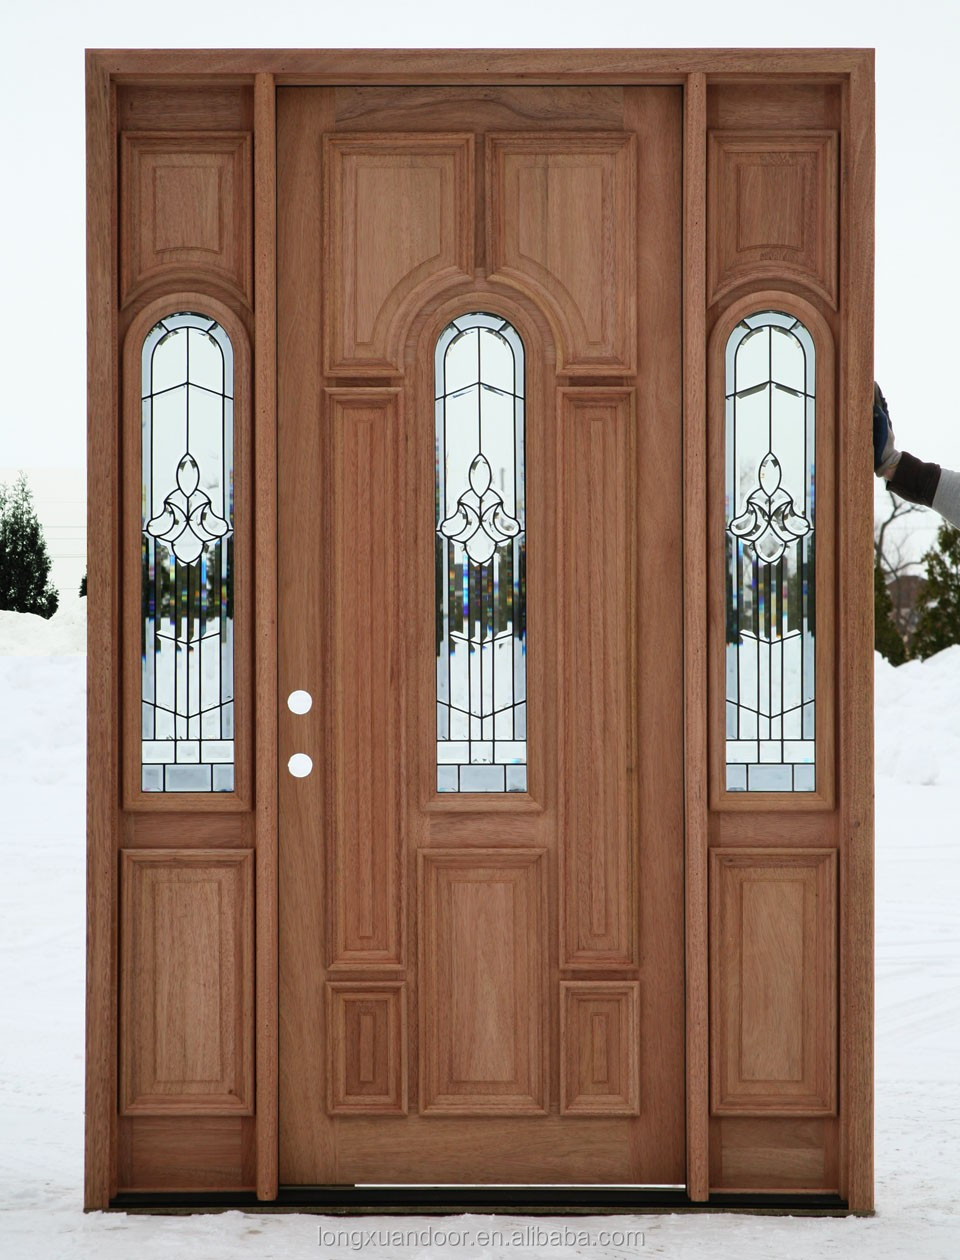 Lowes exterior wood doors used exterior doors for sale for Exterior doors for sale